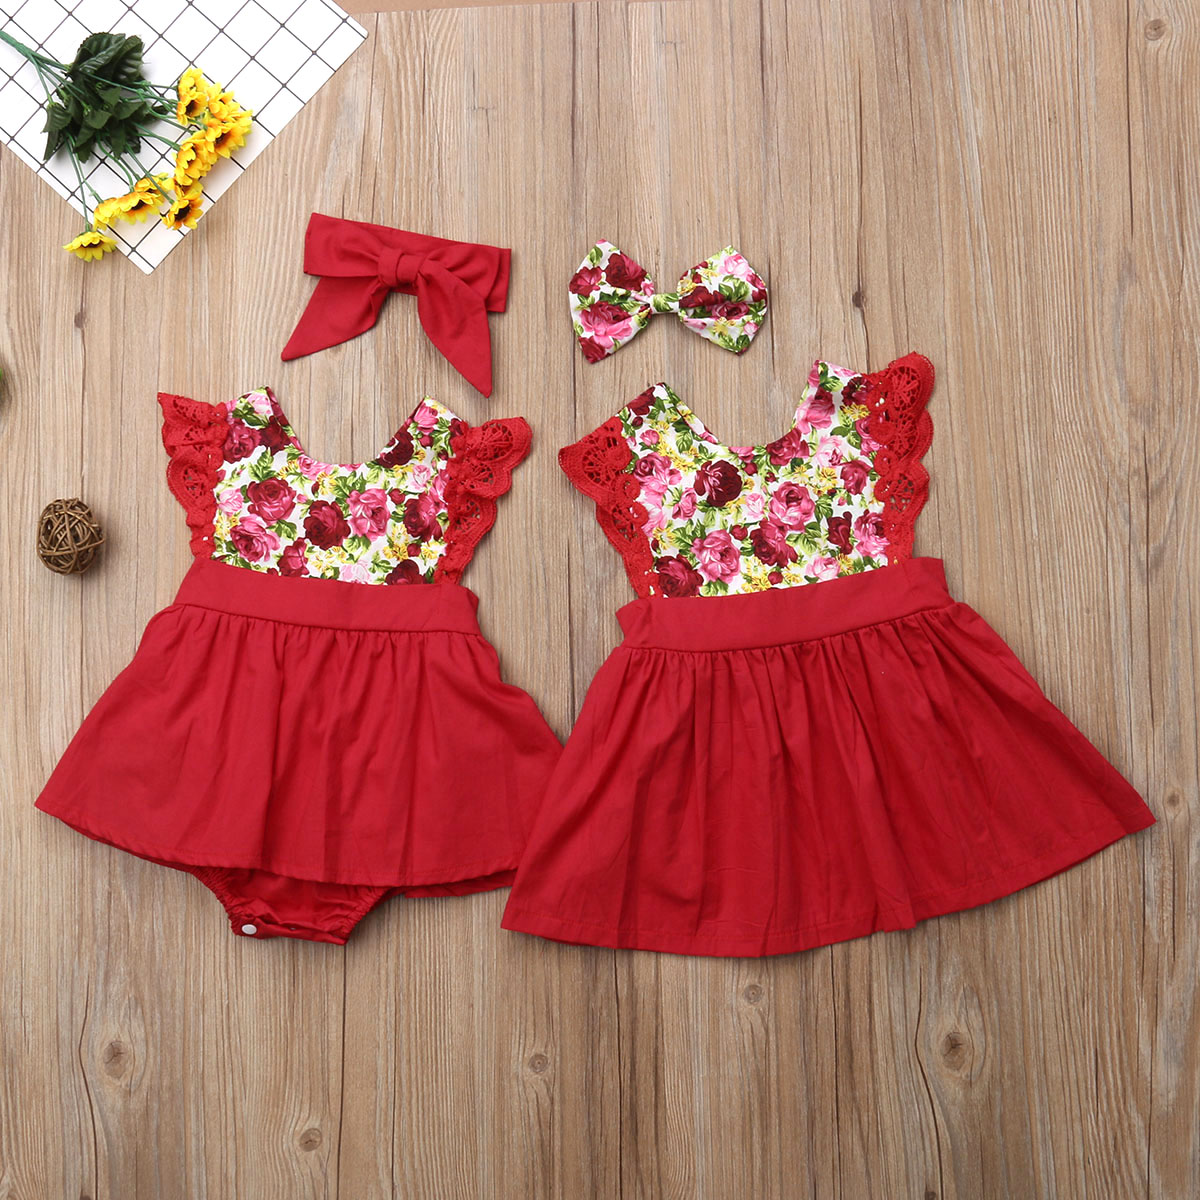 US Christmas Toddler Kids Baby Girl Clothes Outfit Sister Matching Romper Dress